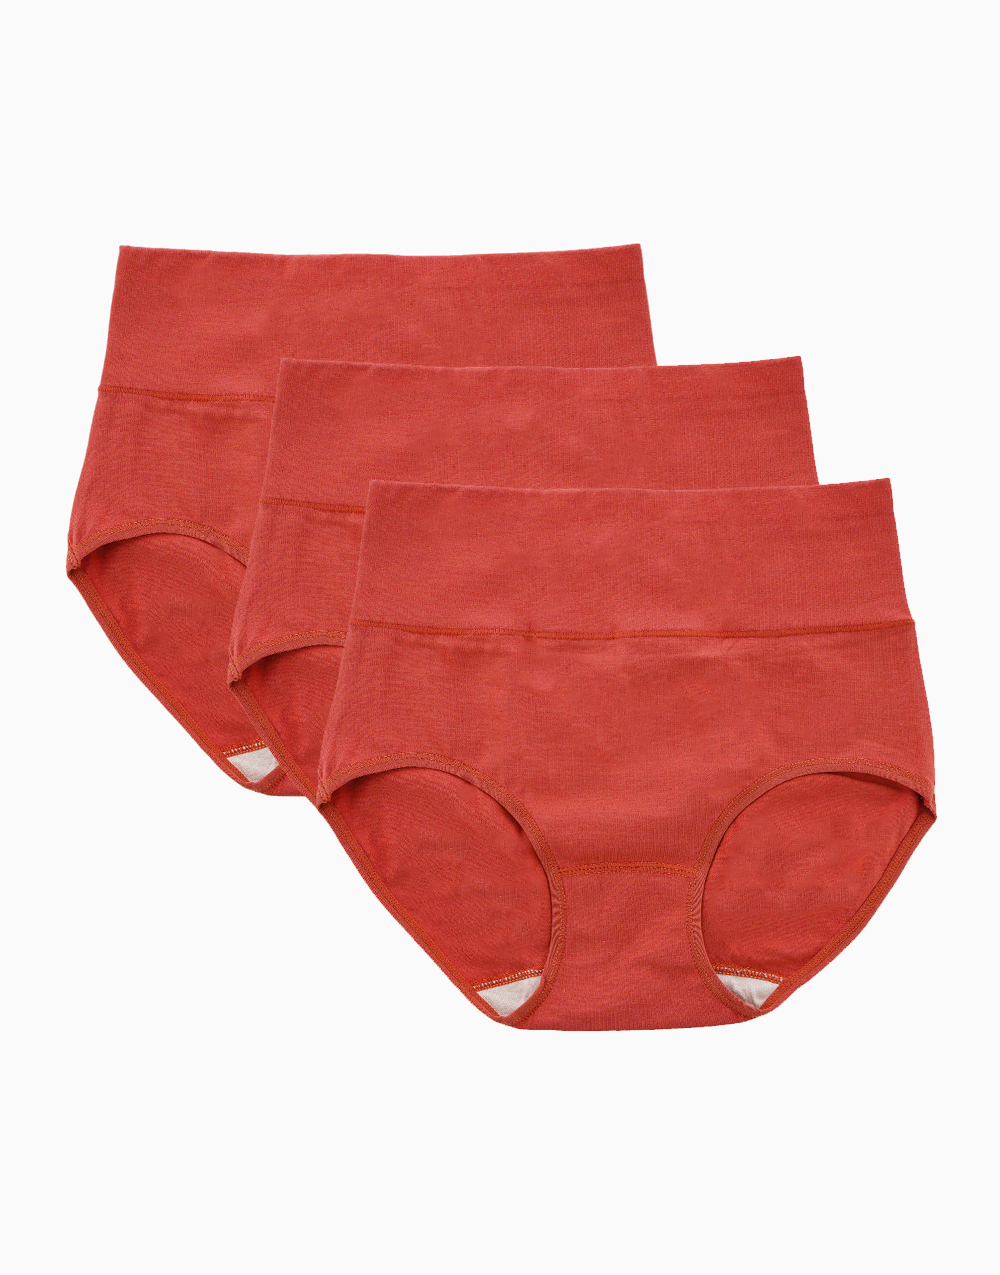 Belly Bikinis in Brick Red (Set of 3 High Rise Control Panties) by Jellyfit | Medium